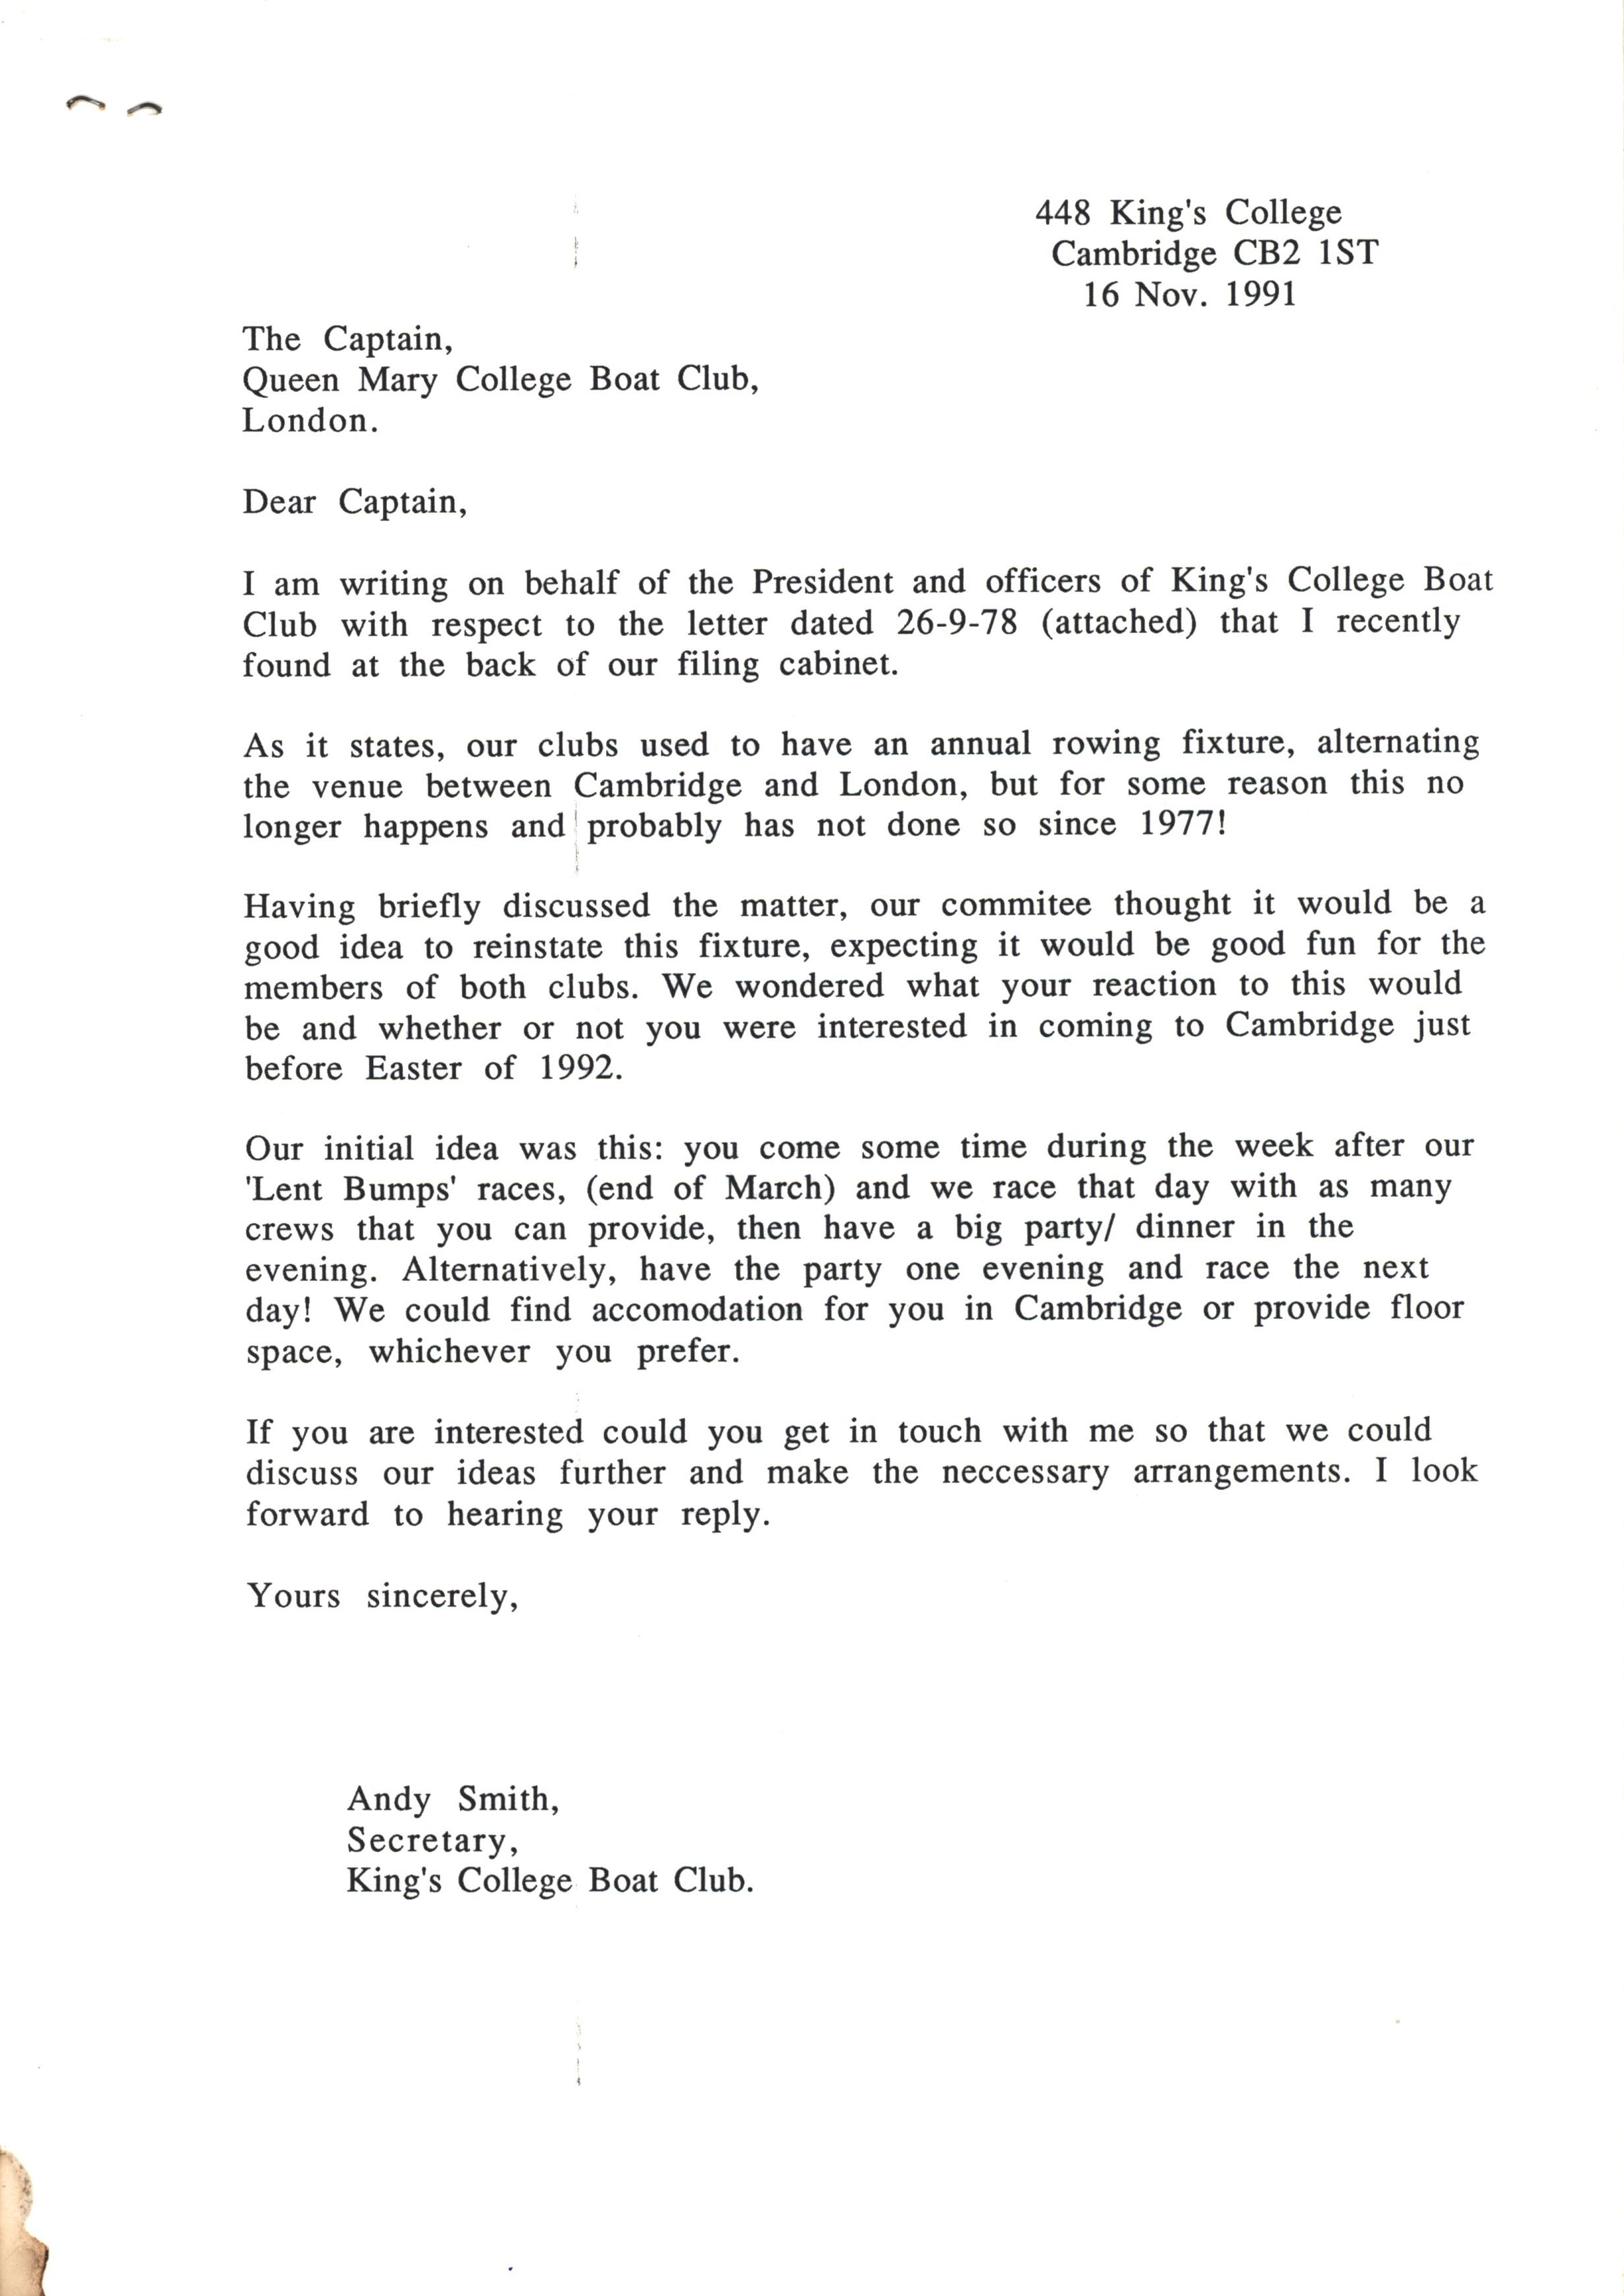 Letter from Andy Smith (then KCBC secretary) to QMUL boat club, 16 November 1991. [KCAS/5/15]